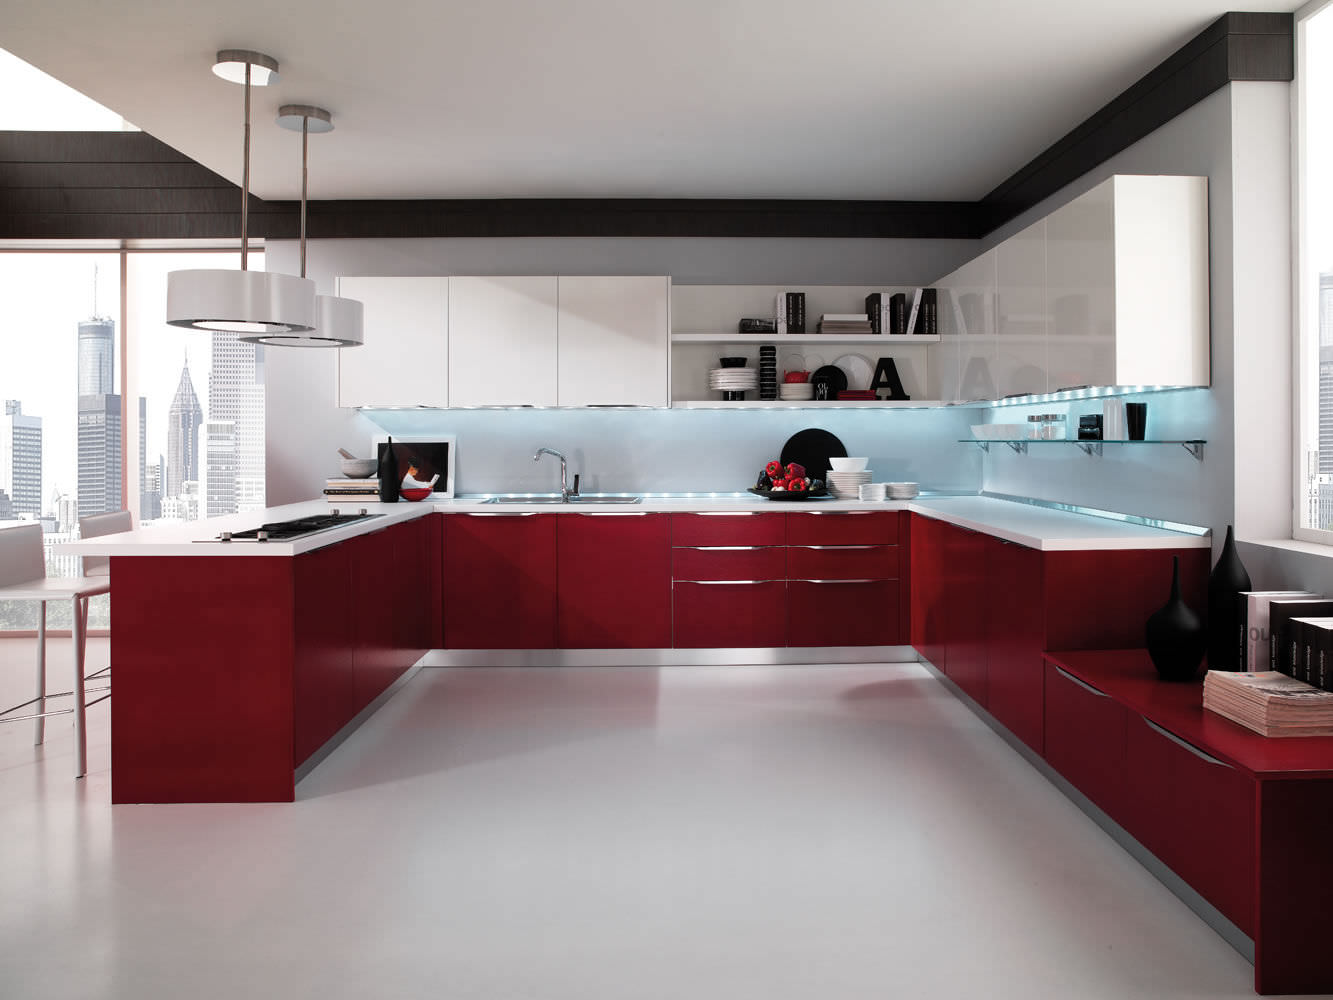 Pvc Kitchen Furniture Designs High Gloss Kitchen Cabinet Design Ideas 2015 Kitchen Designs